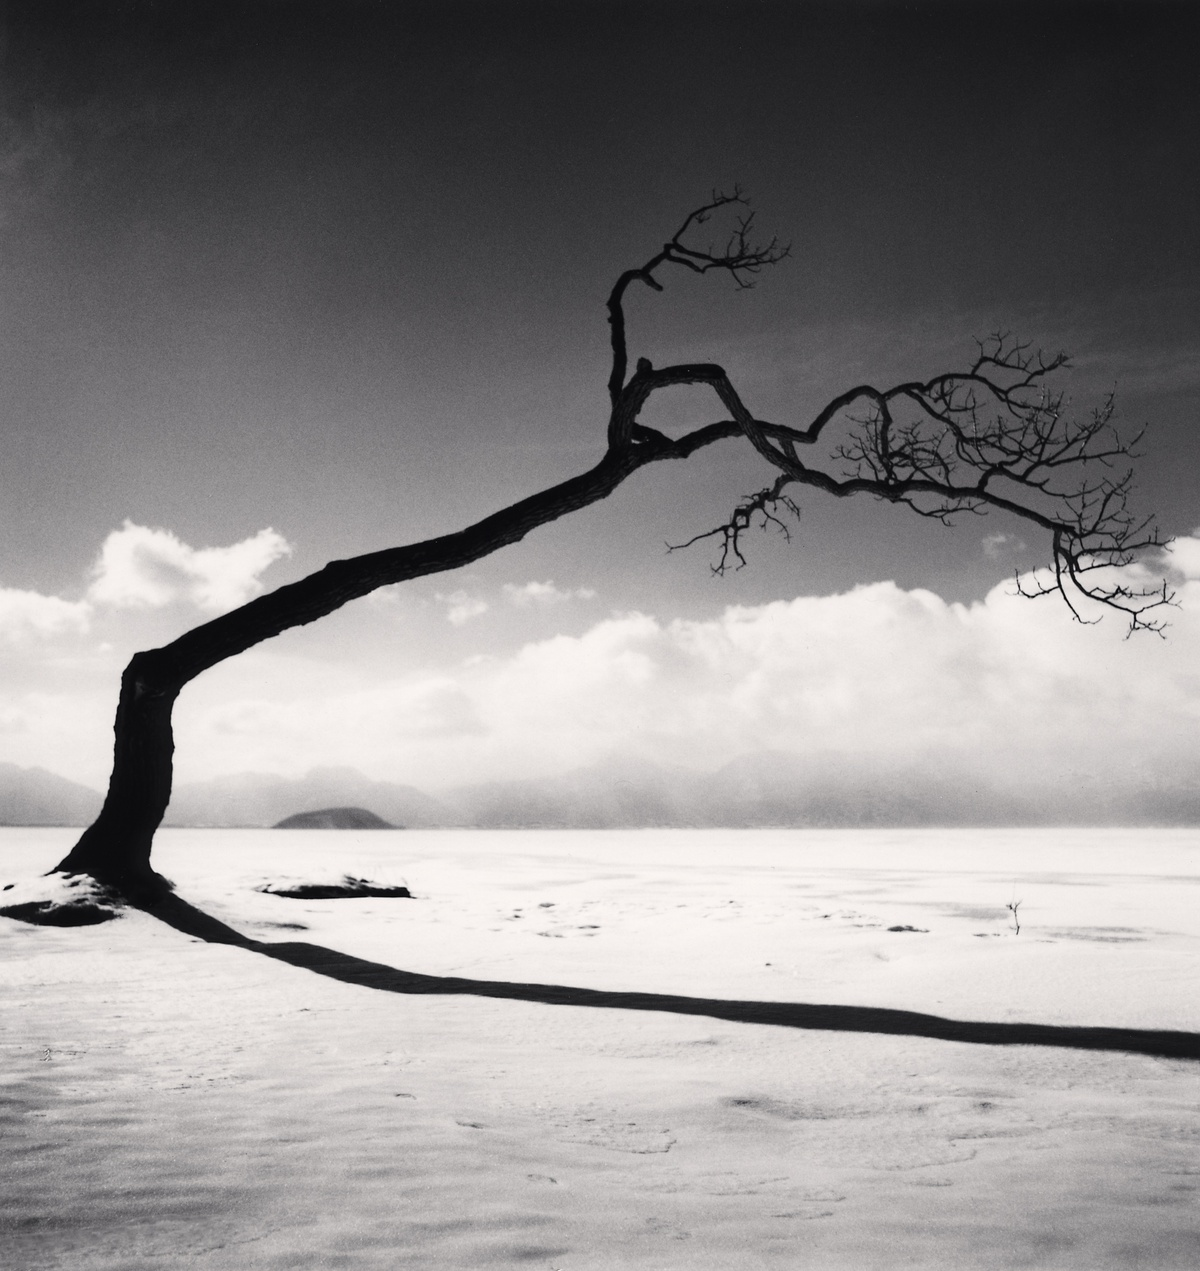 Michael Kenna Kussharo Lake Tree, Study 10, Kotan, Hokkaido, Japan 2005 Sepia Toned Silver Gelatin Print From An Edition Of 45 8 x 8 Inches